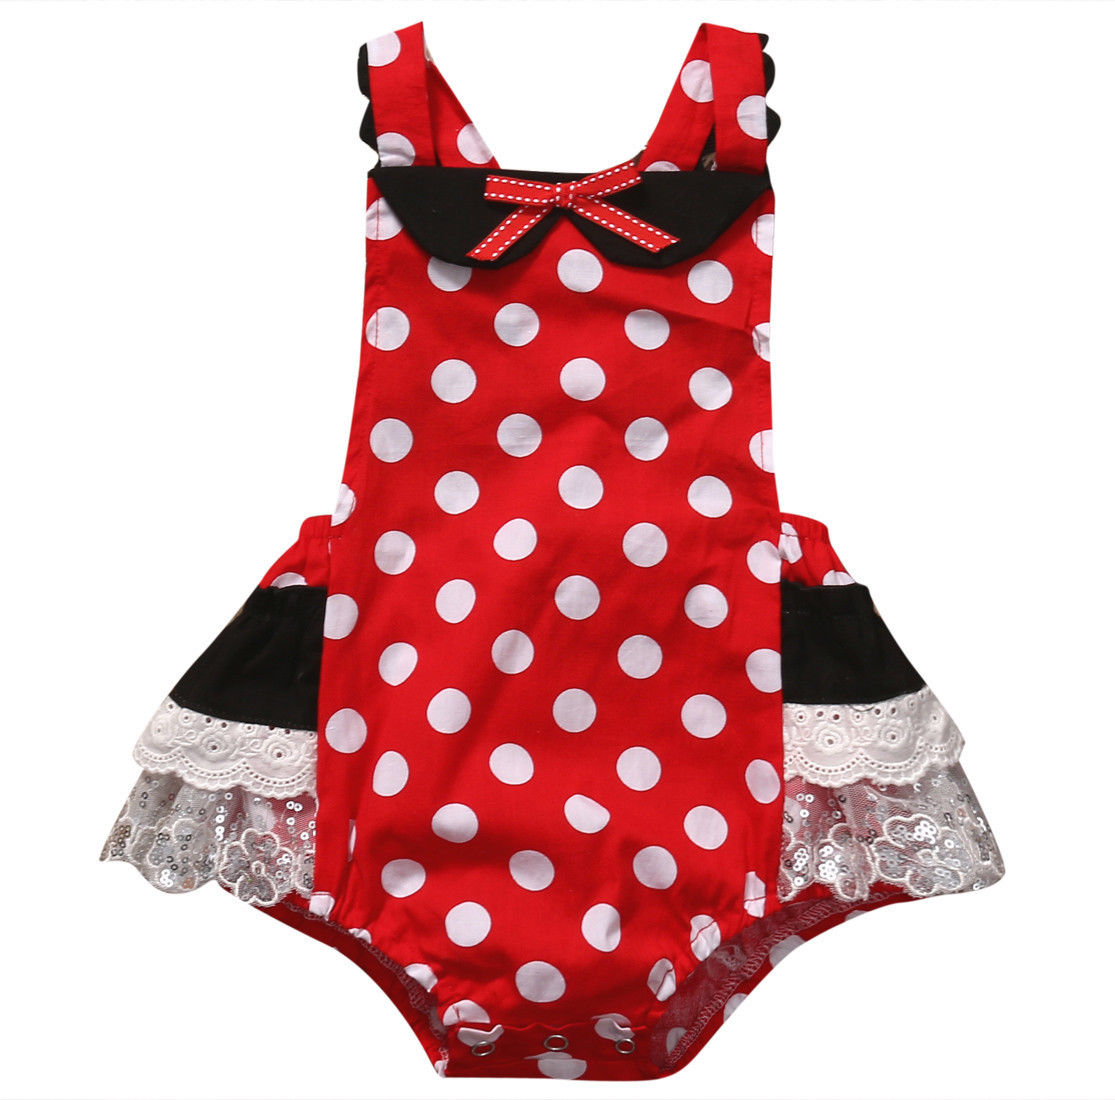 2017 Minnie Mouse Polka Dot Baby Set Newborn Infant Baby Girl Summer Romper Baby Jumpsuit Lace Outfit Sunsuit Children Clothing цена